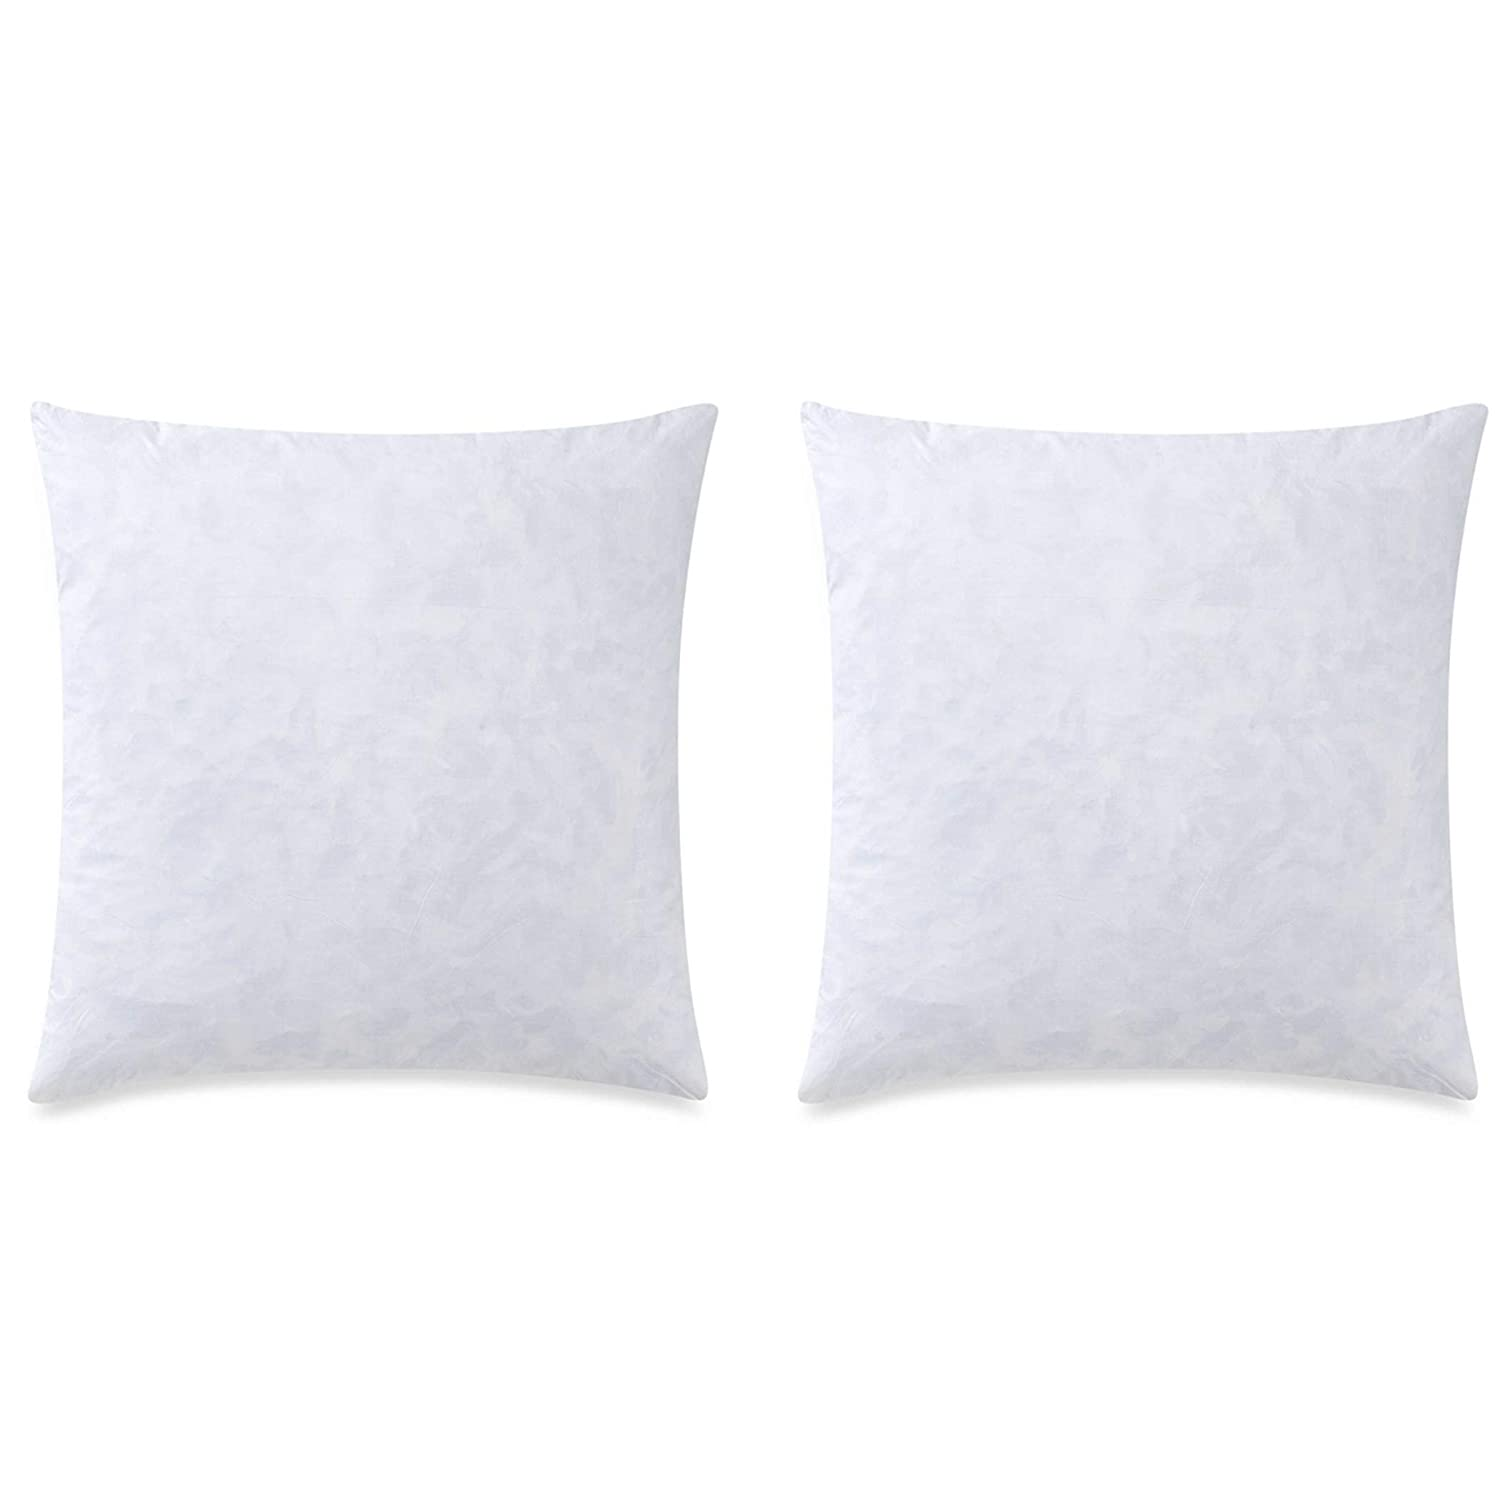 YesterdayHome Set of 2-18x18 Throw Pillow Inserts-Down Feather Pillow Inserts-White